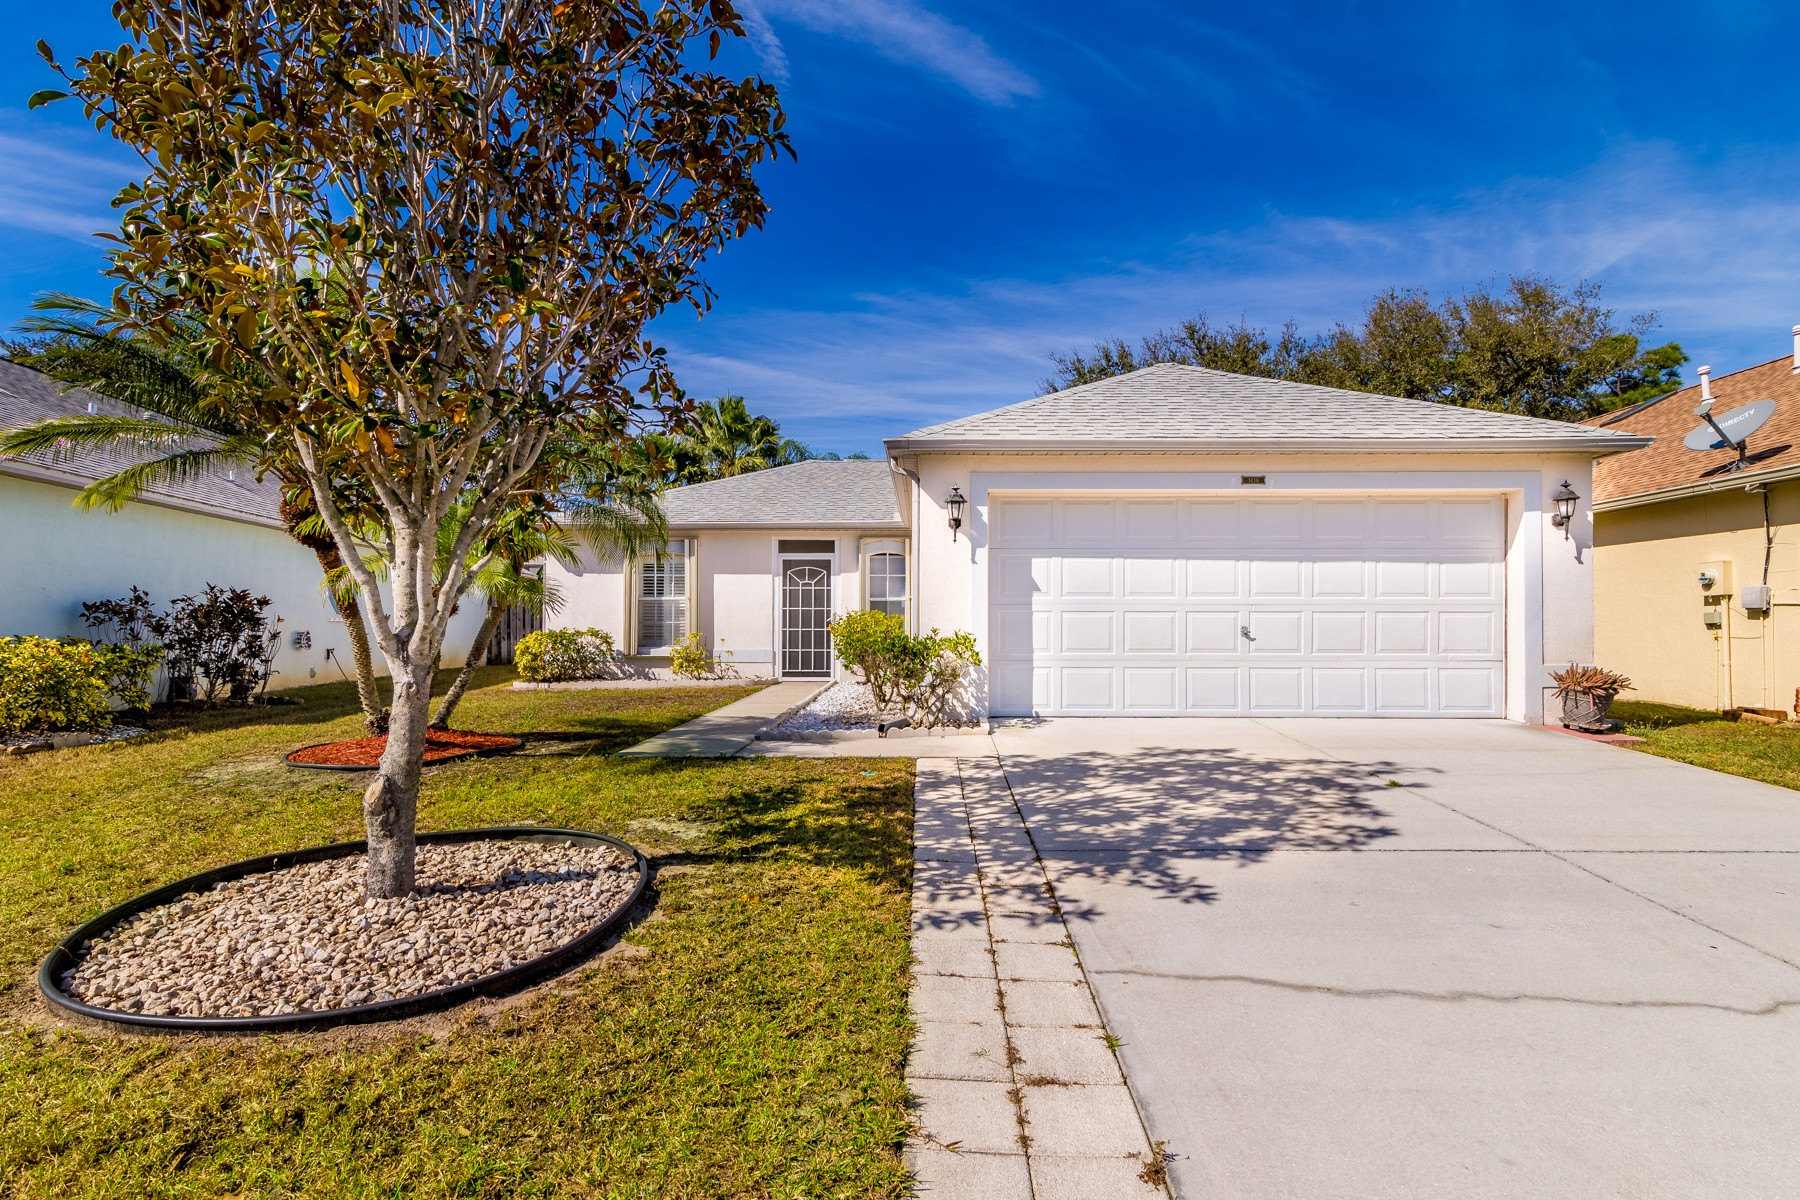 Property for Sale at Spacious & Updated Home in Viera. 1436 Crane Creek Boulevard Melbourne, Florida 32940 United States